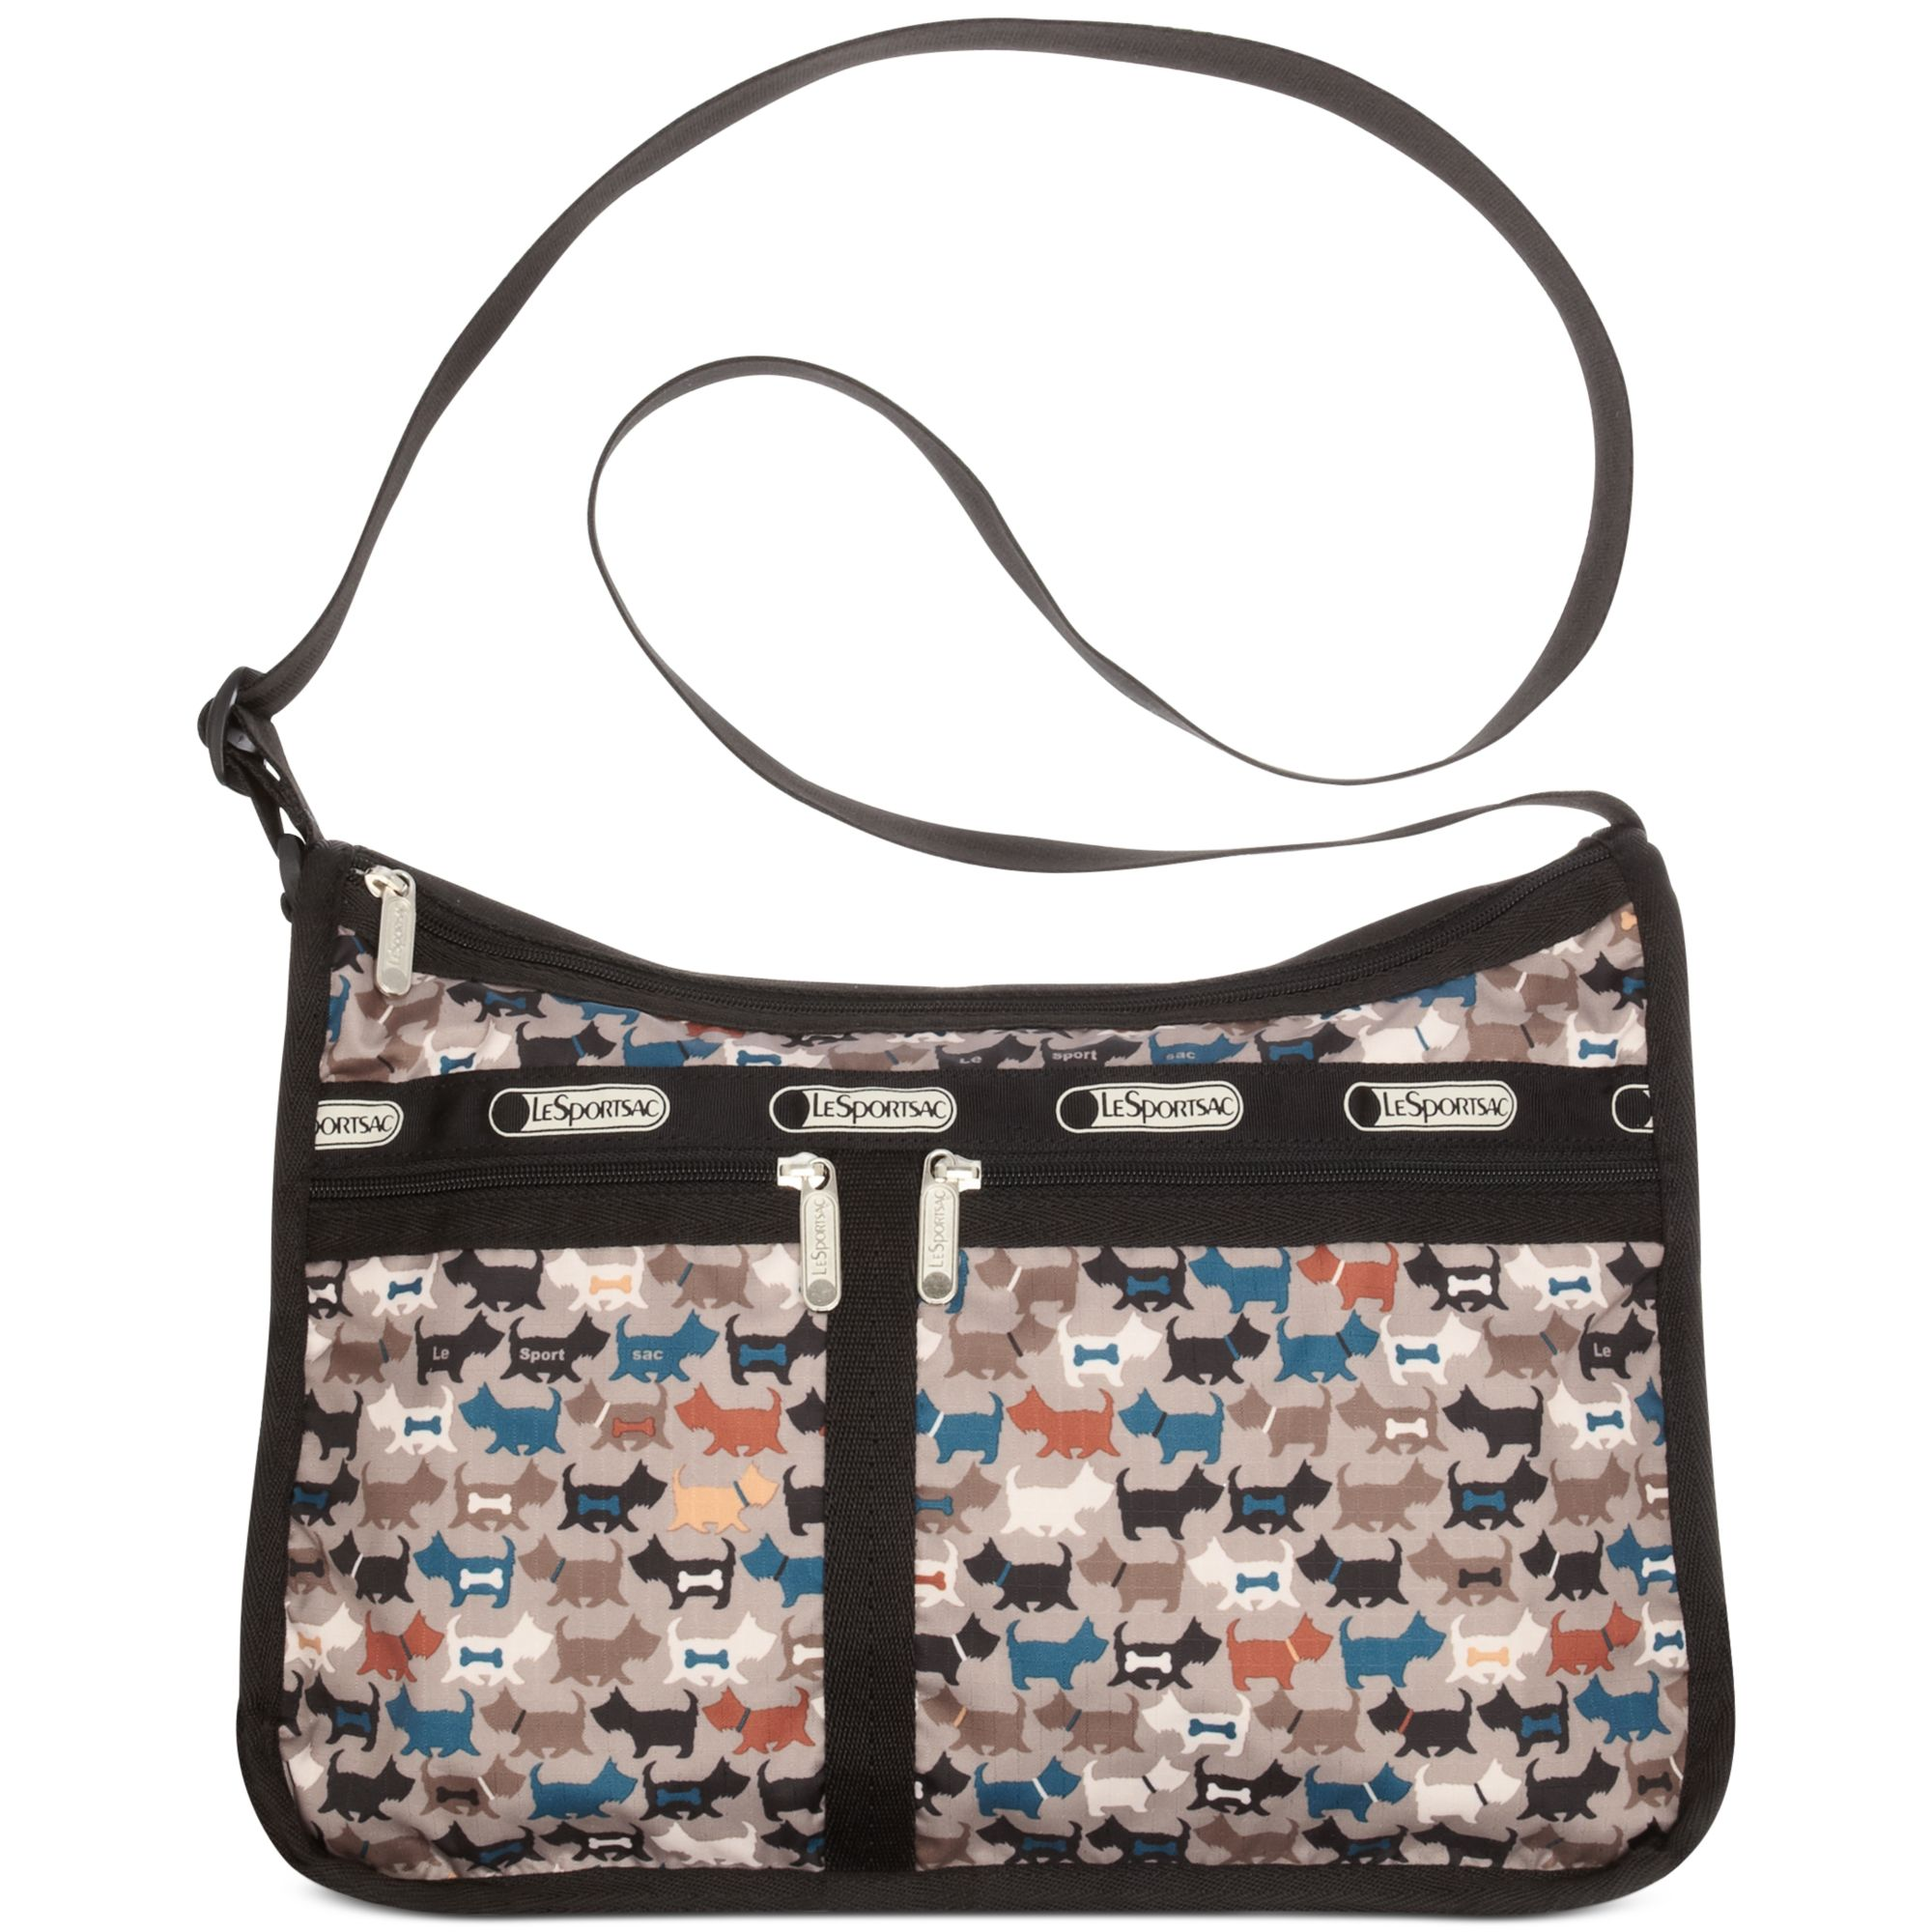 Lesportsac Deluxe Everyday Bag In Multicolor Mcscotty Lyst